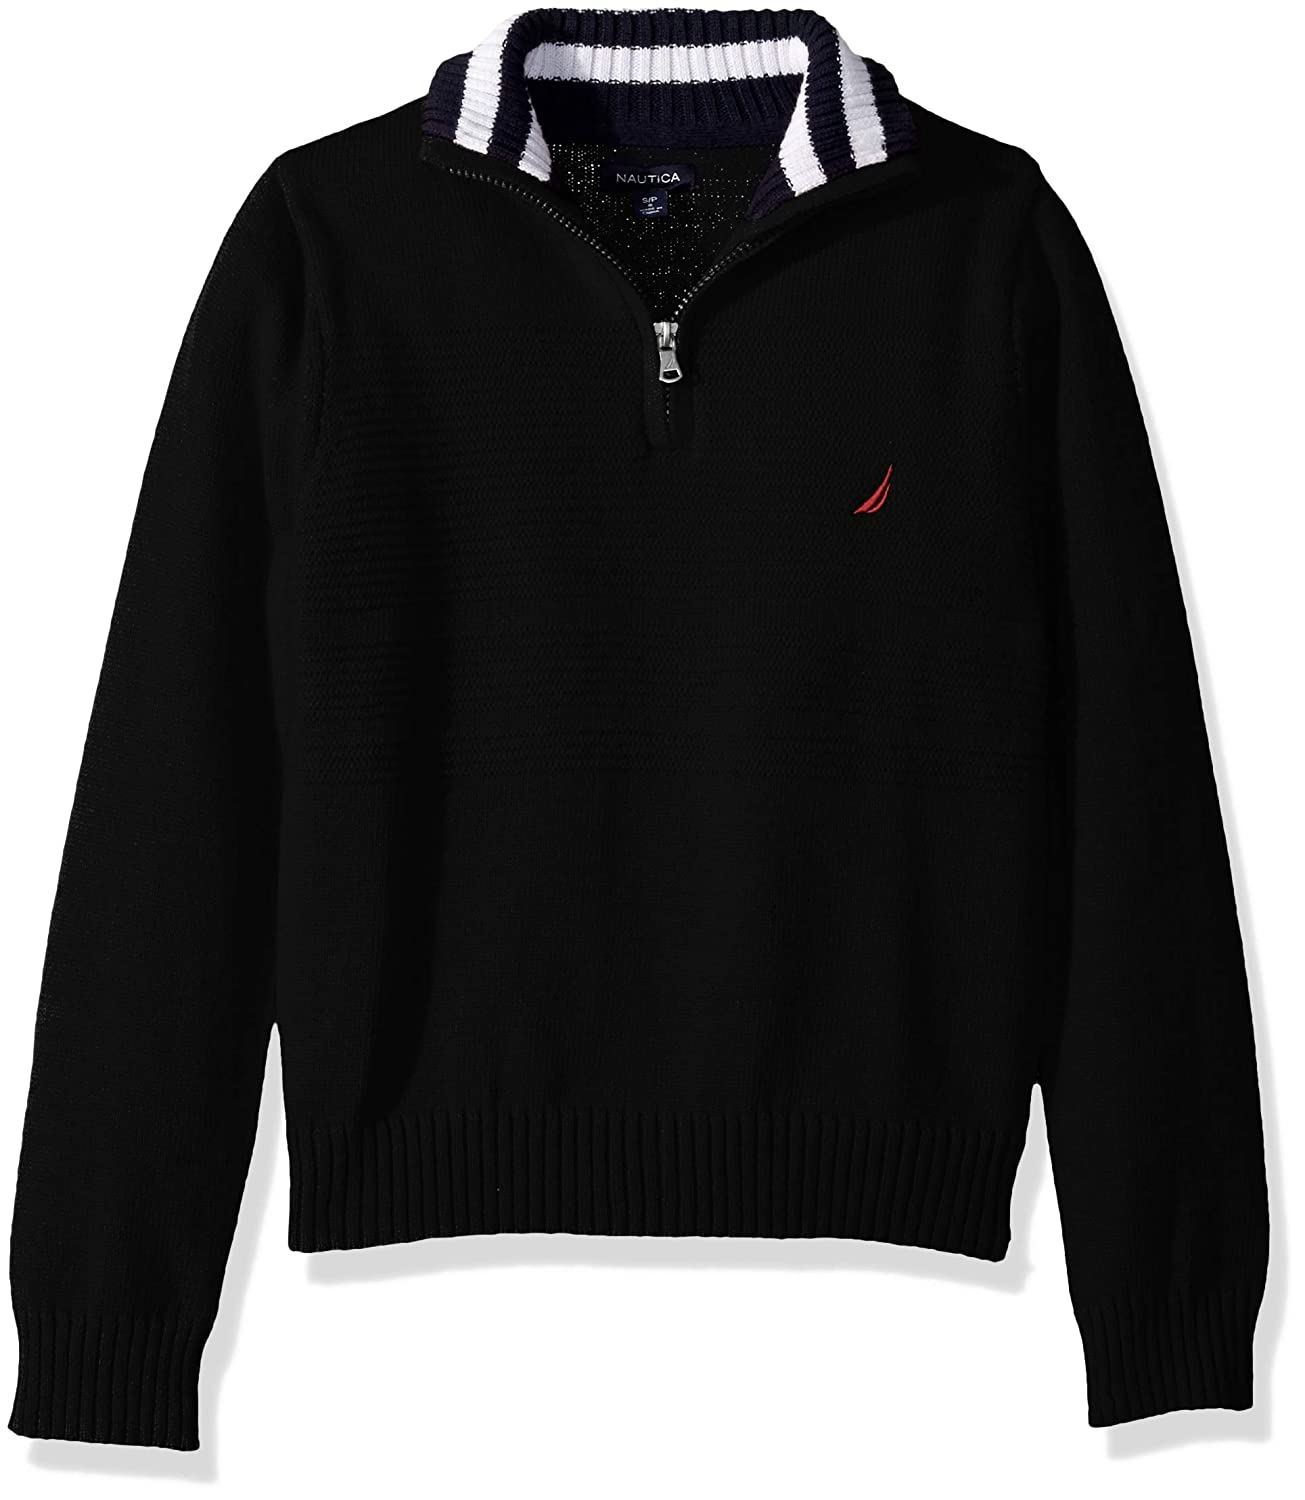 Nautica Boys Sweater